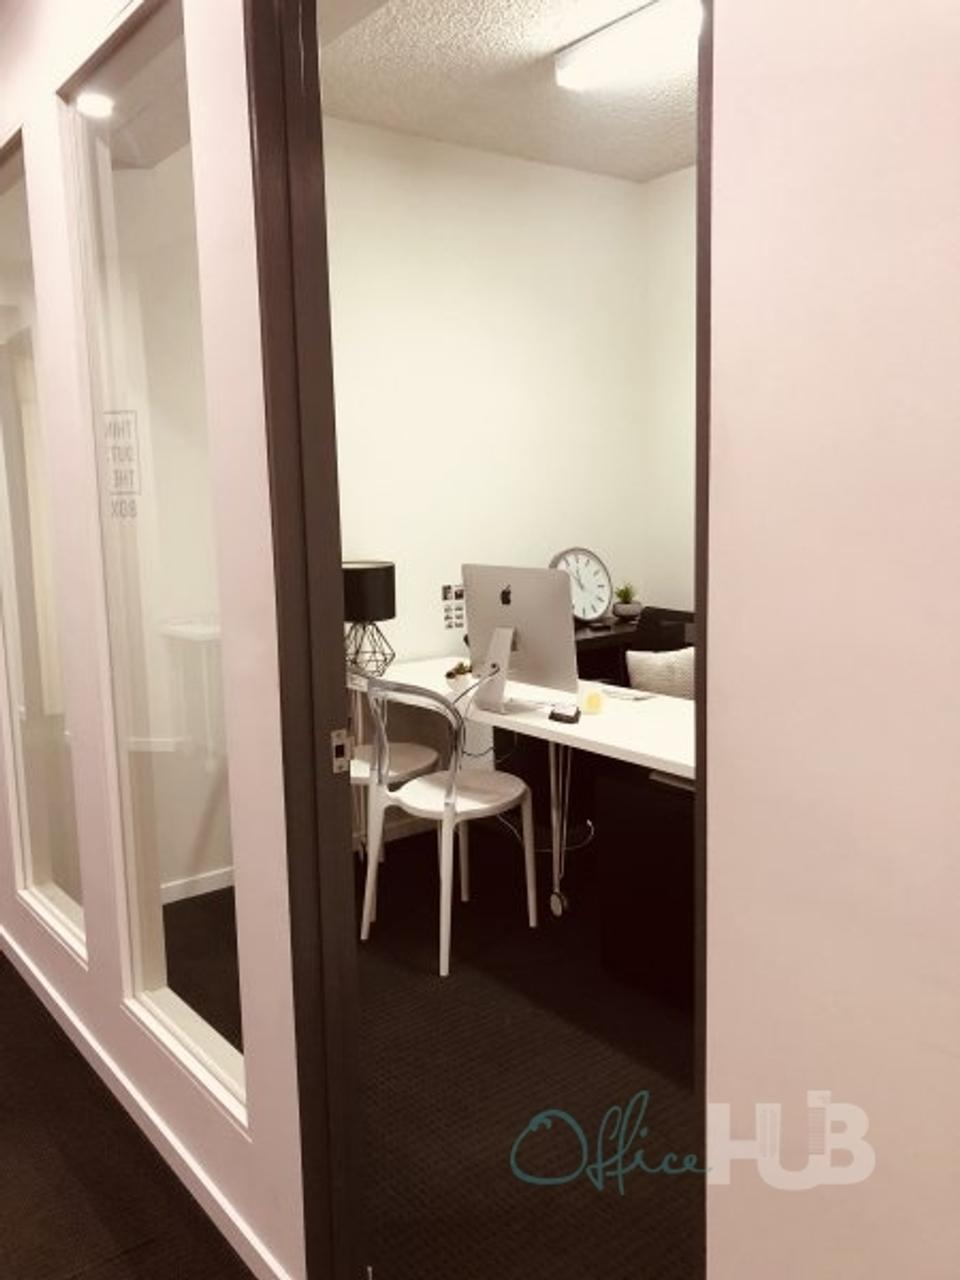 1 Person Coworking Office For Lease At Sydney Road, Brunswick, VIC, 3056 - image 3